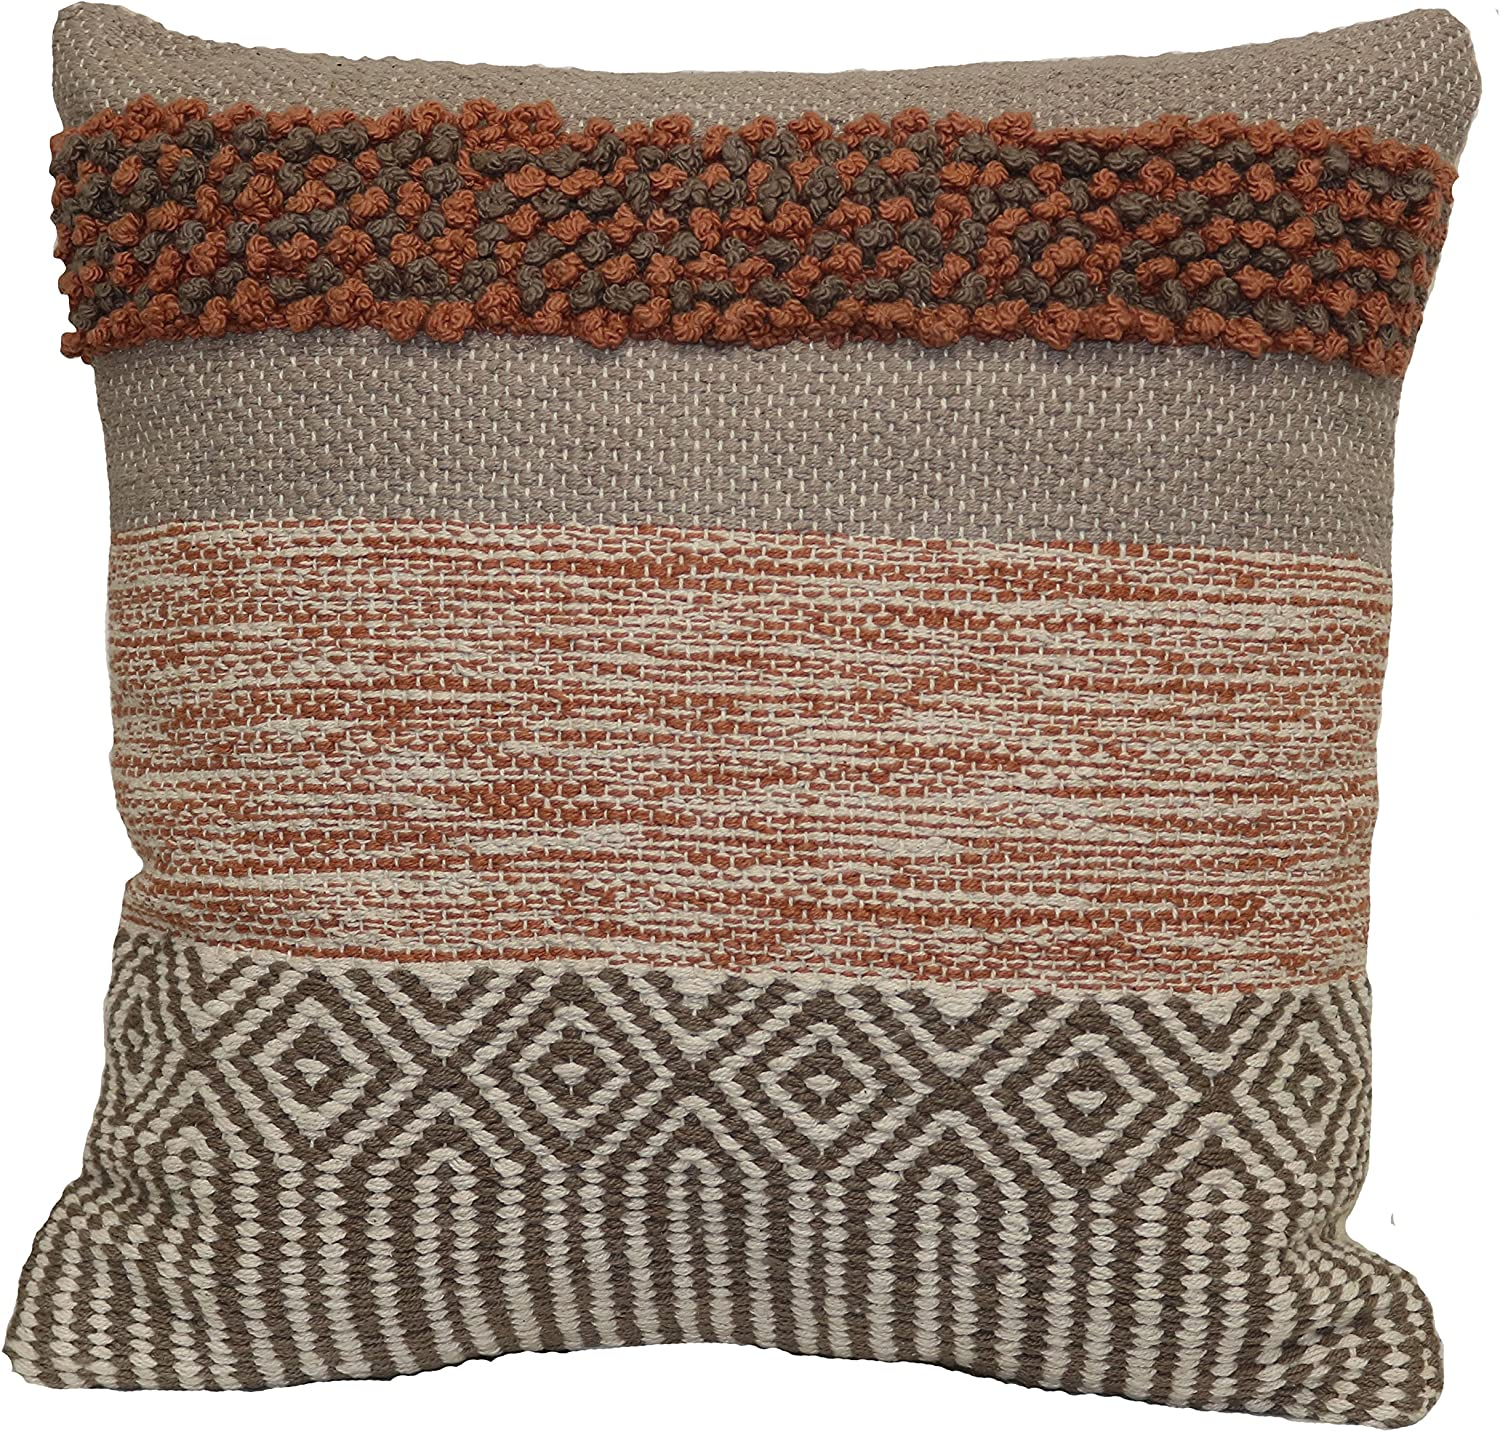 "Brentwood Originals Textured Marled Pillow, 18"" x 18"", Terracotta"